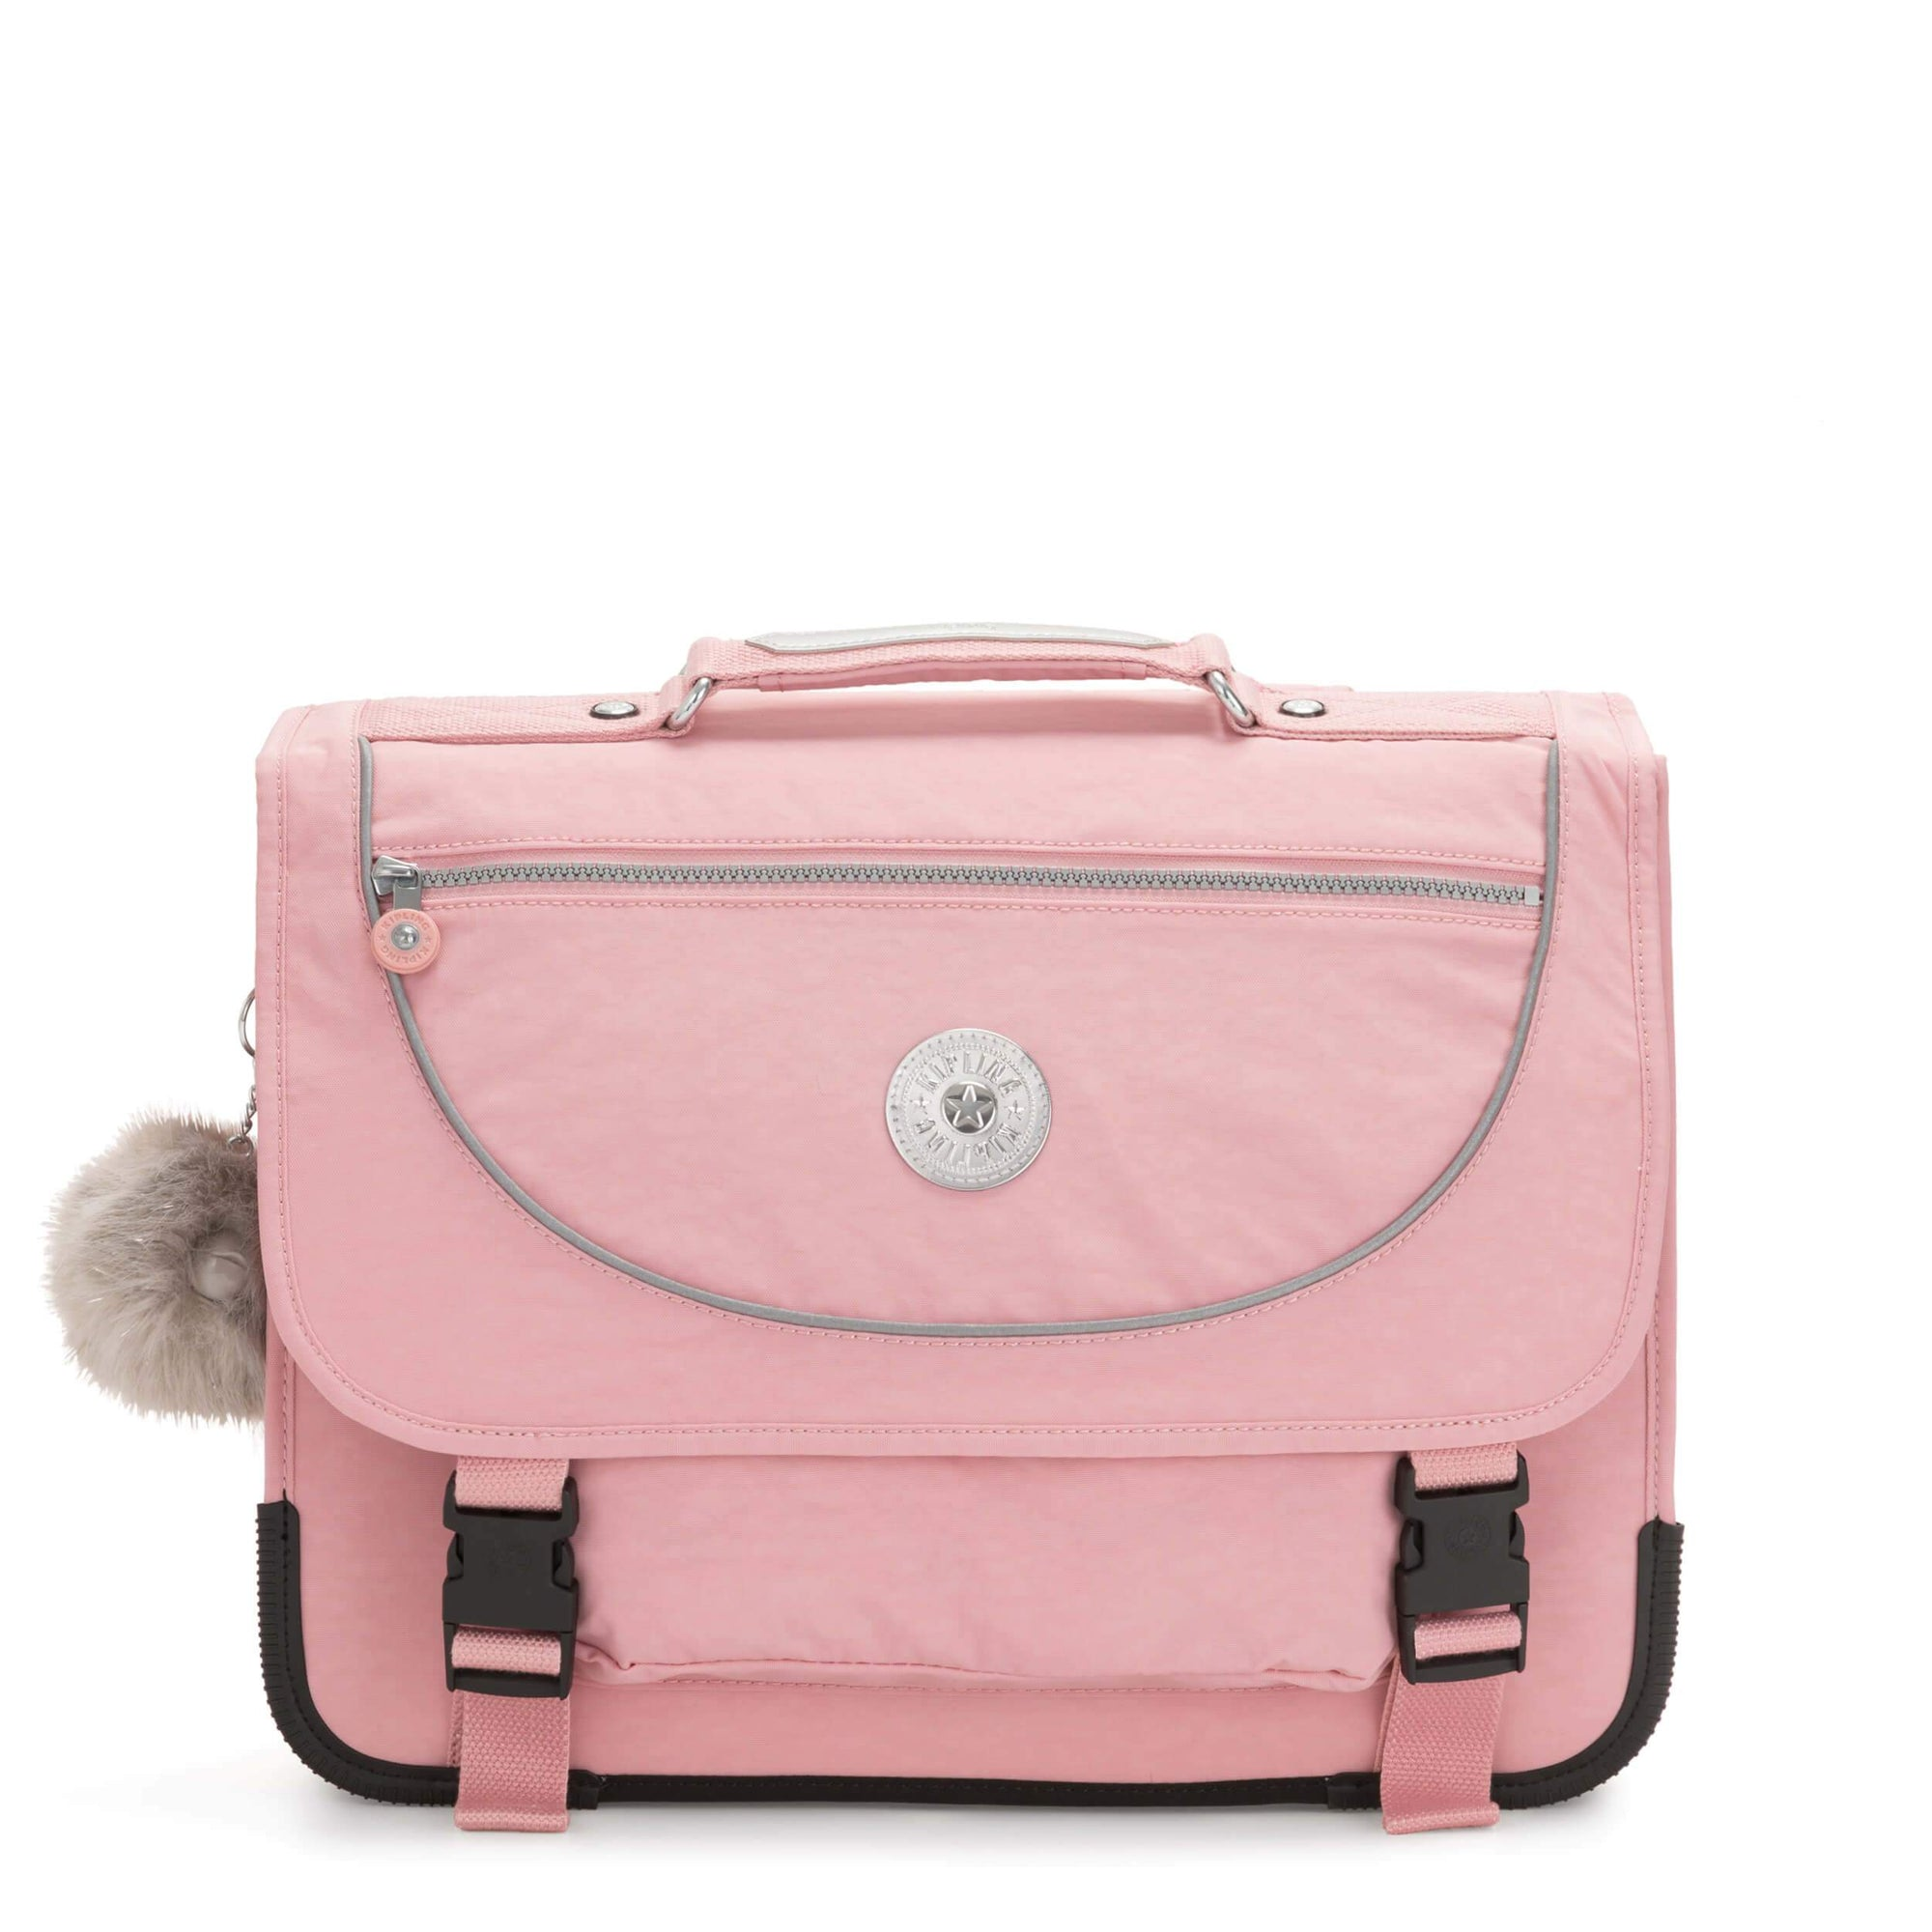 Mochila Kipling Preppy Bridal Rose